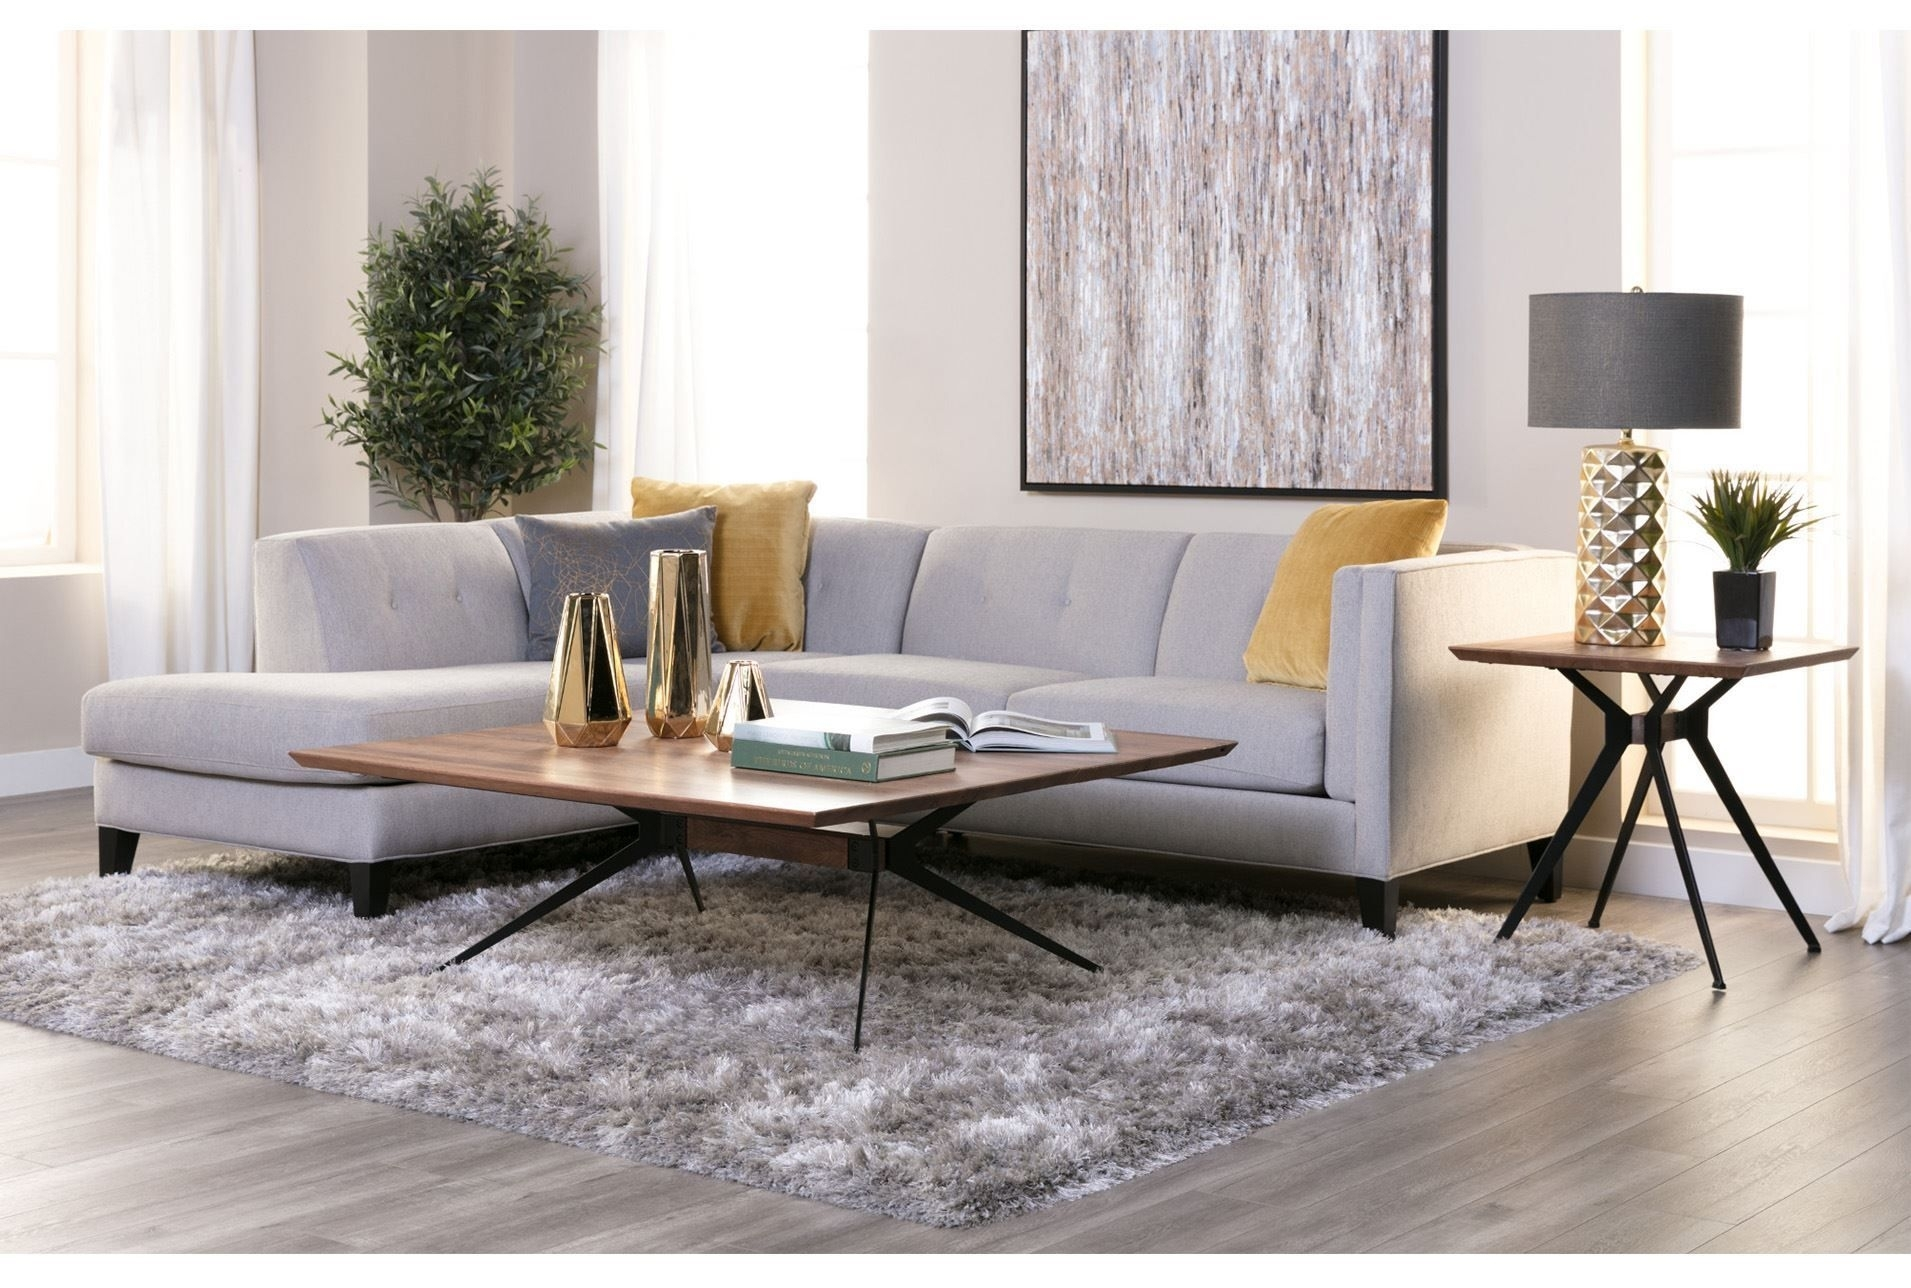 Avery 2 Piece Sectional W/laf Armless Chaise | Home Decor/interior In Avery 2 Piece Sectionals With Raf Armless Chaise (Photo 2 of 25)